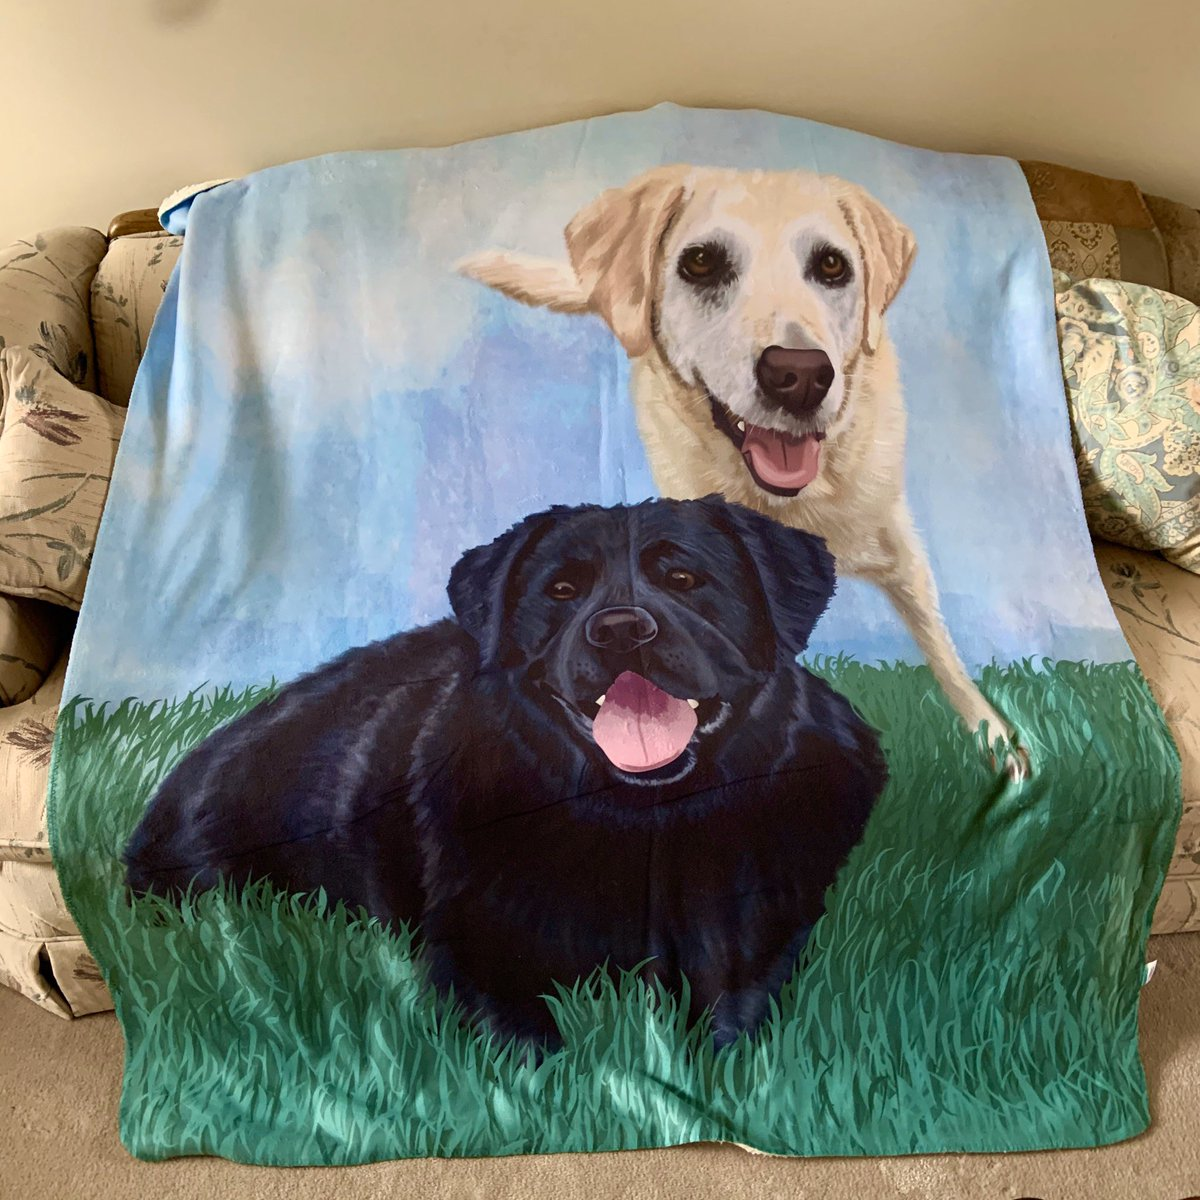 Here is the final product of my illustration on a Sherpa blanket 50x60 inches Now my dad can he can cuddle his favorite labbies whenever he wants. #petportrait #memorieblanket #talesofalab #dogsofinstagram #dogsofbuffalo #buffaloartist #petillustrationpic.twitter.com/L6E865hthR